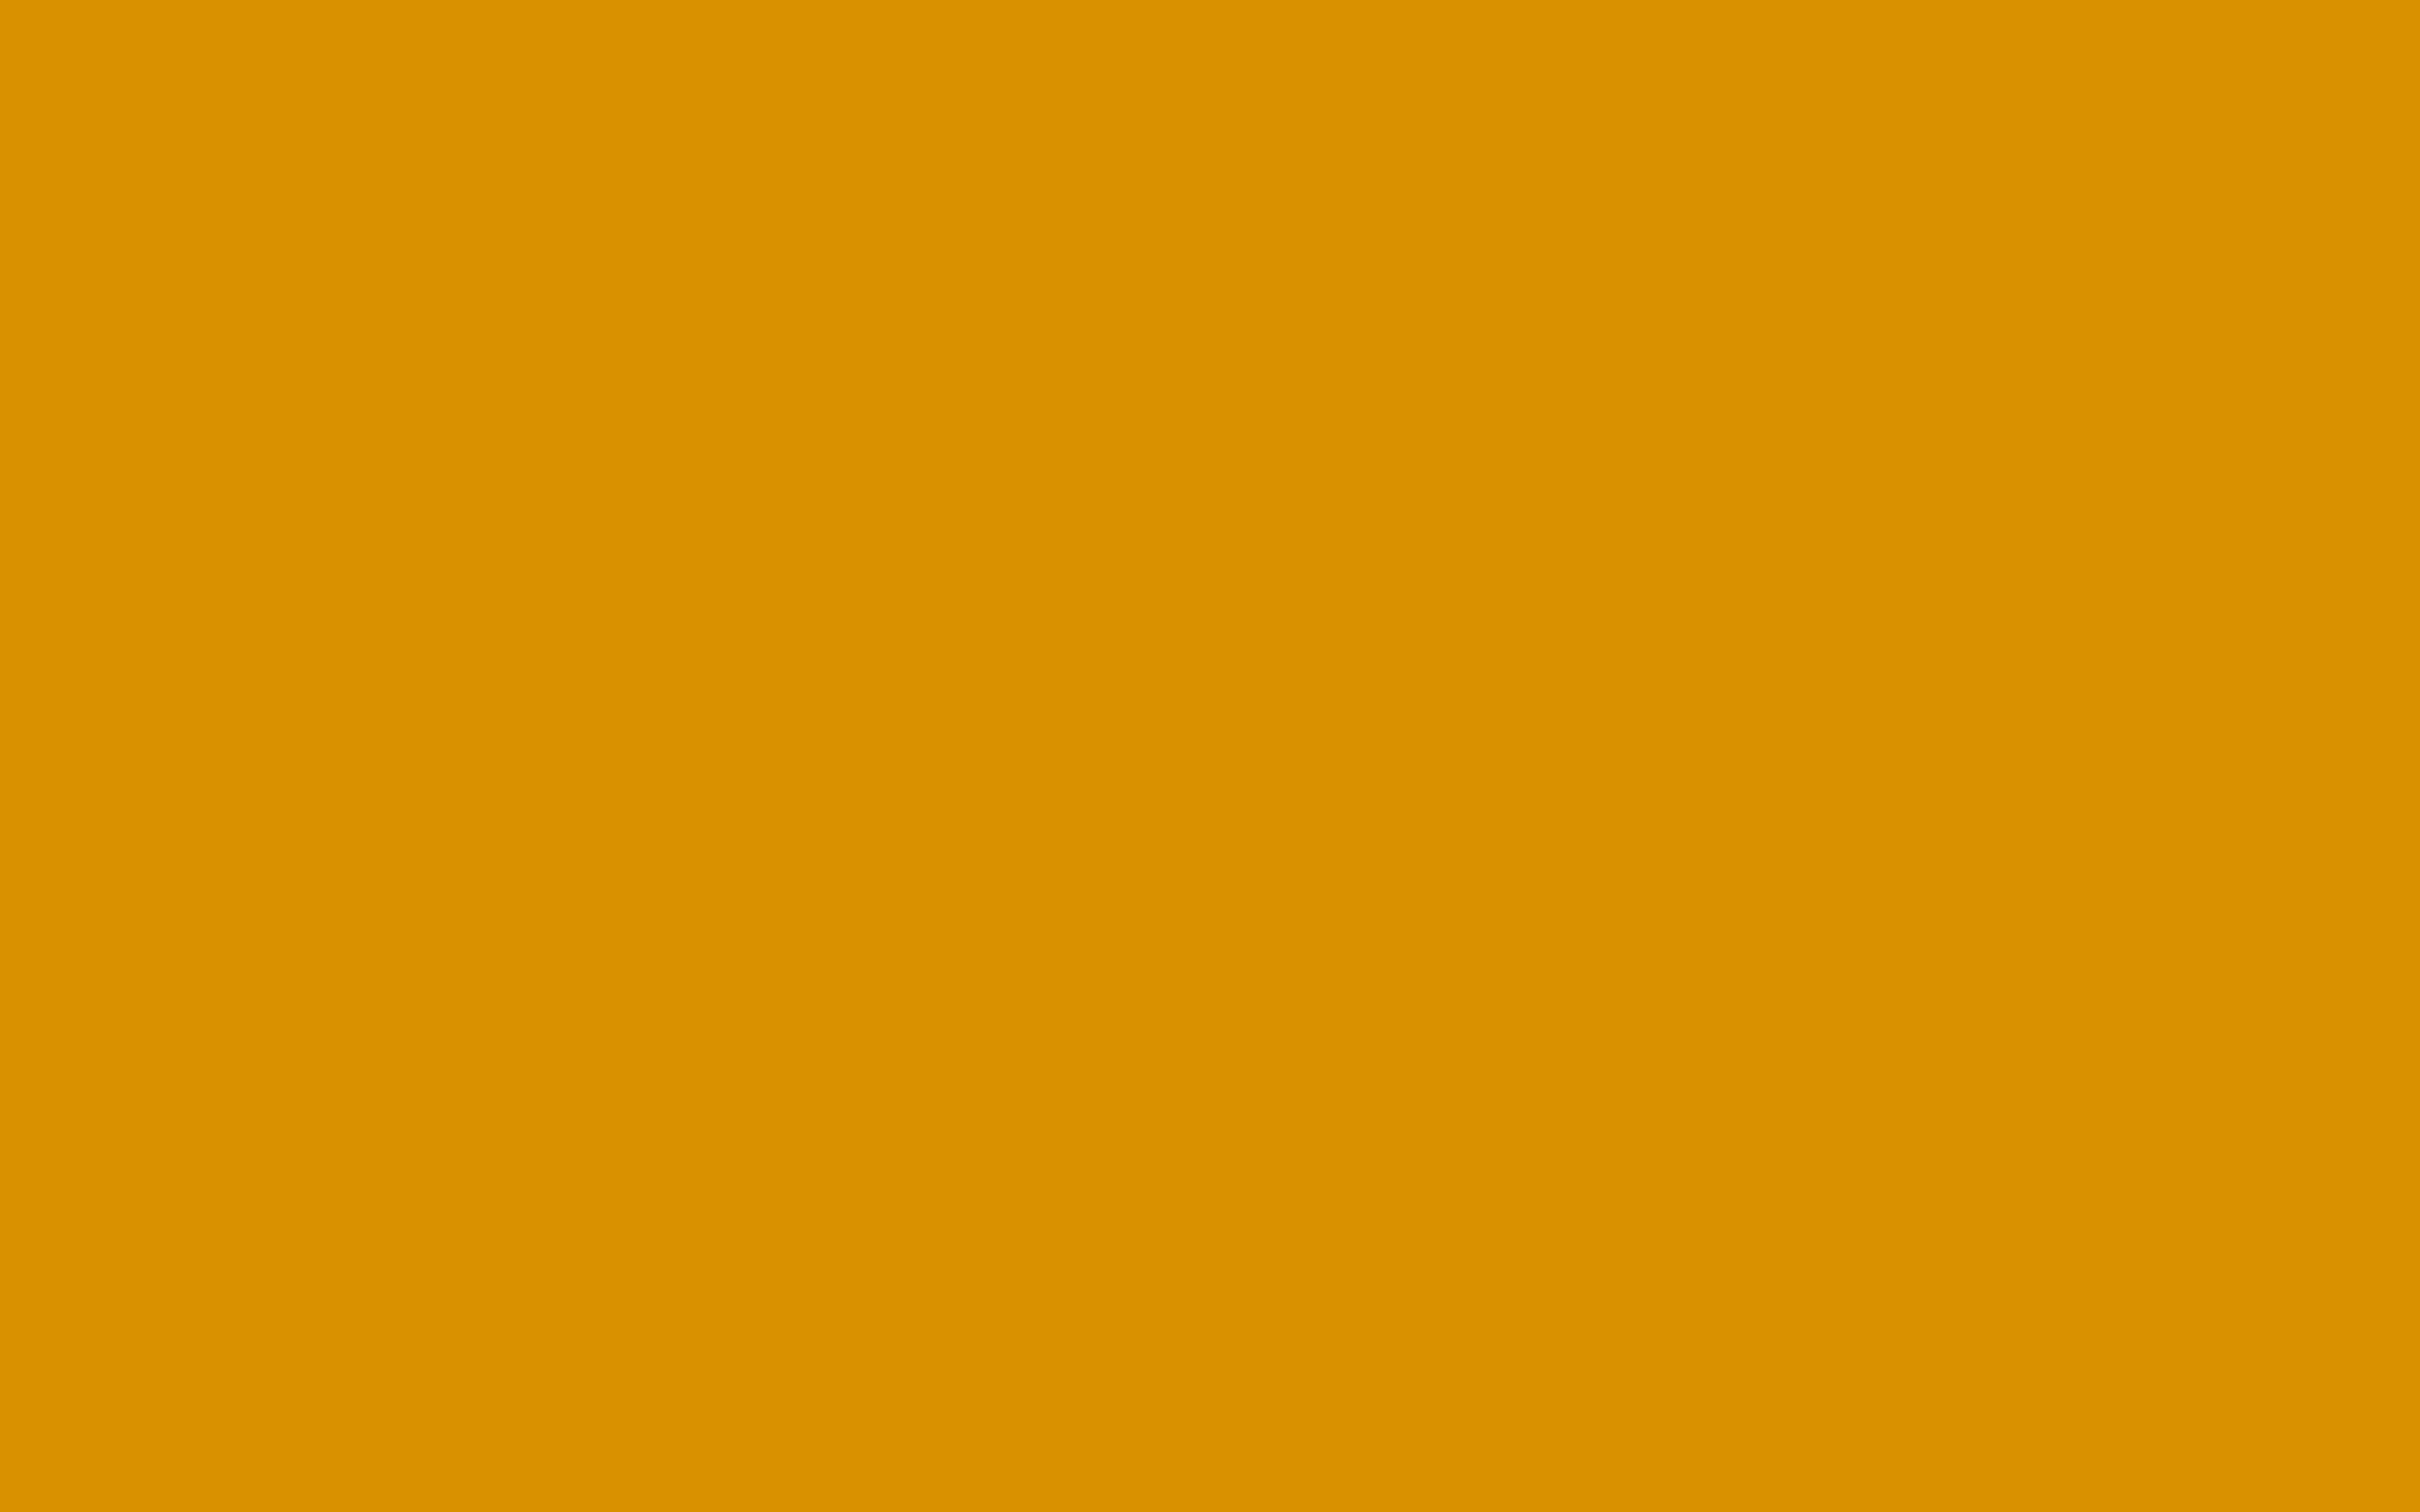 2560x1600 Harvest Gold Solid Color Background